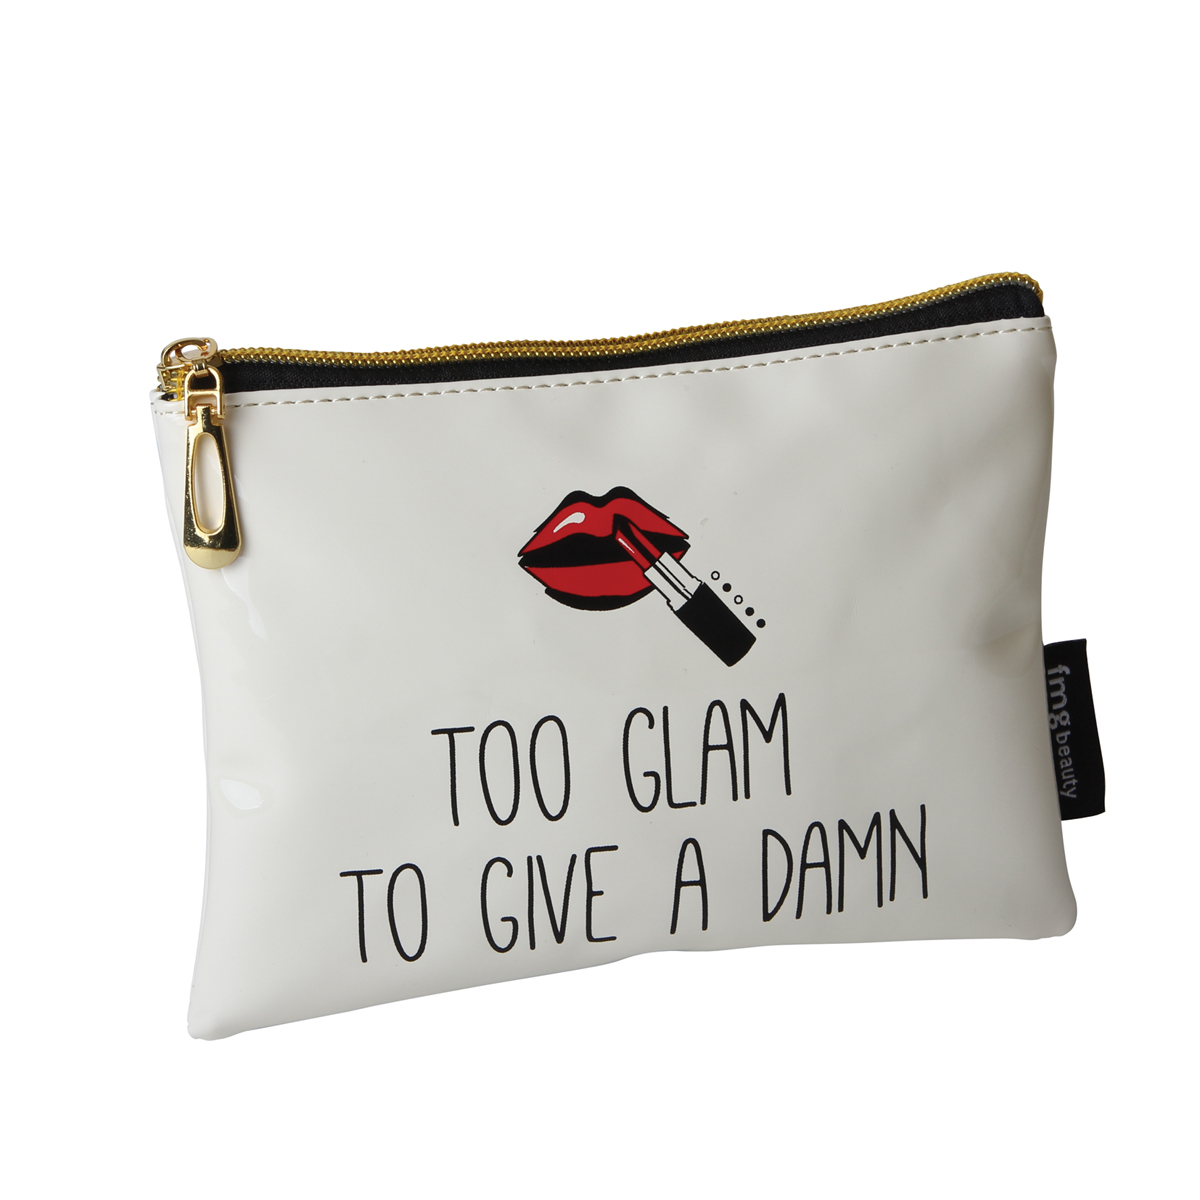 B2079 - Too Glam To Give A Damn' Makeup Bag - B2079